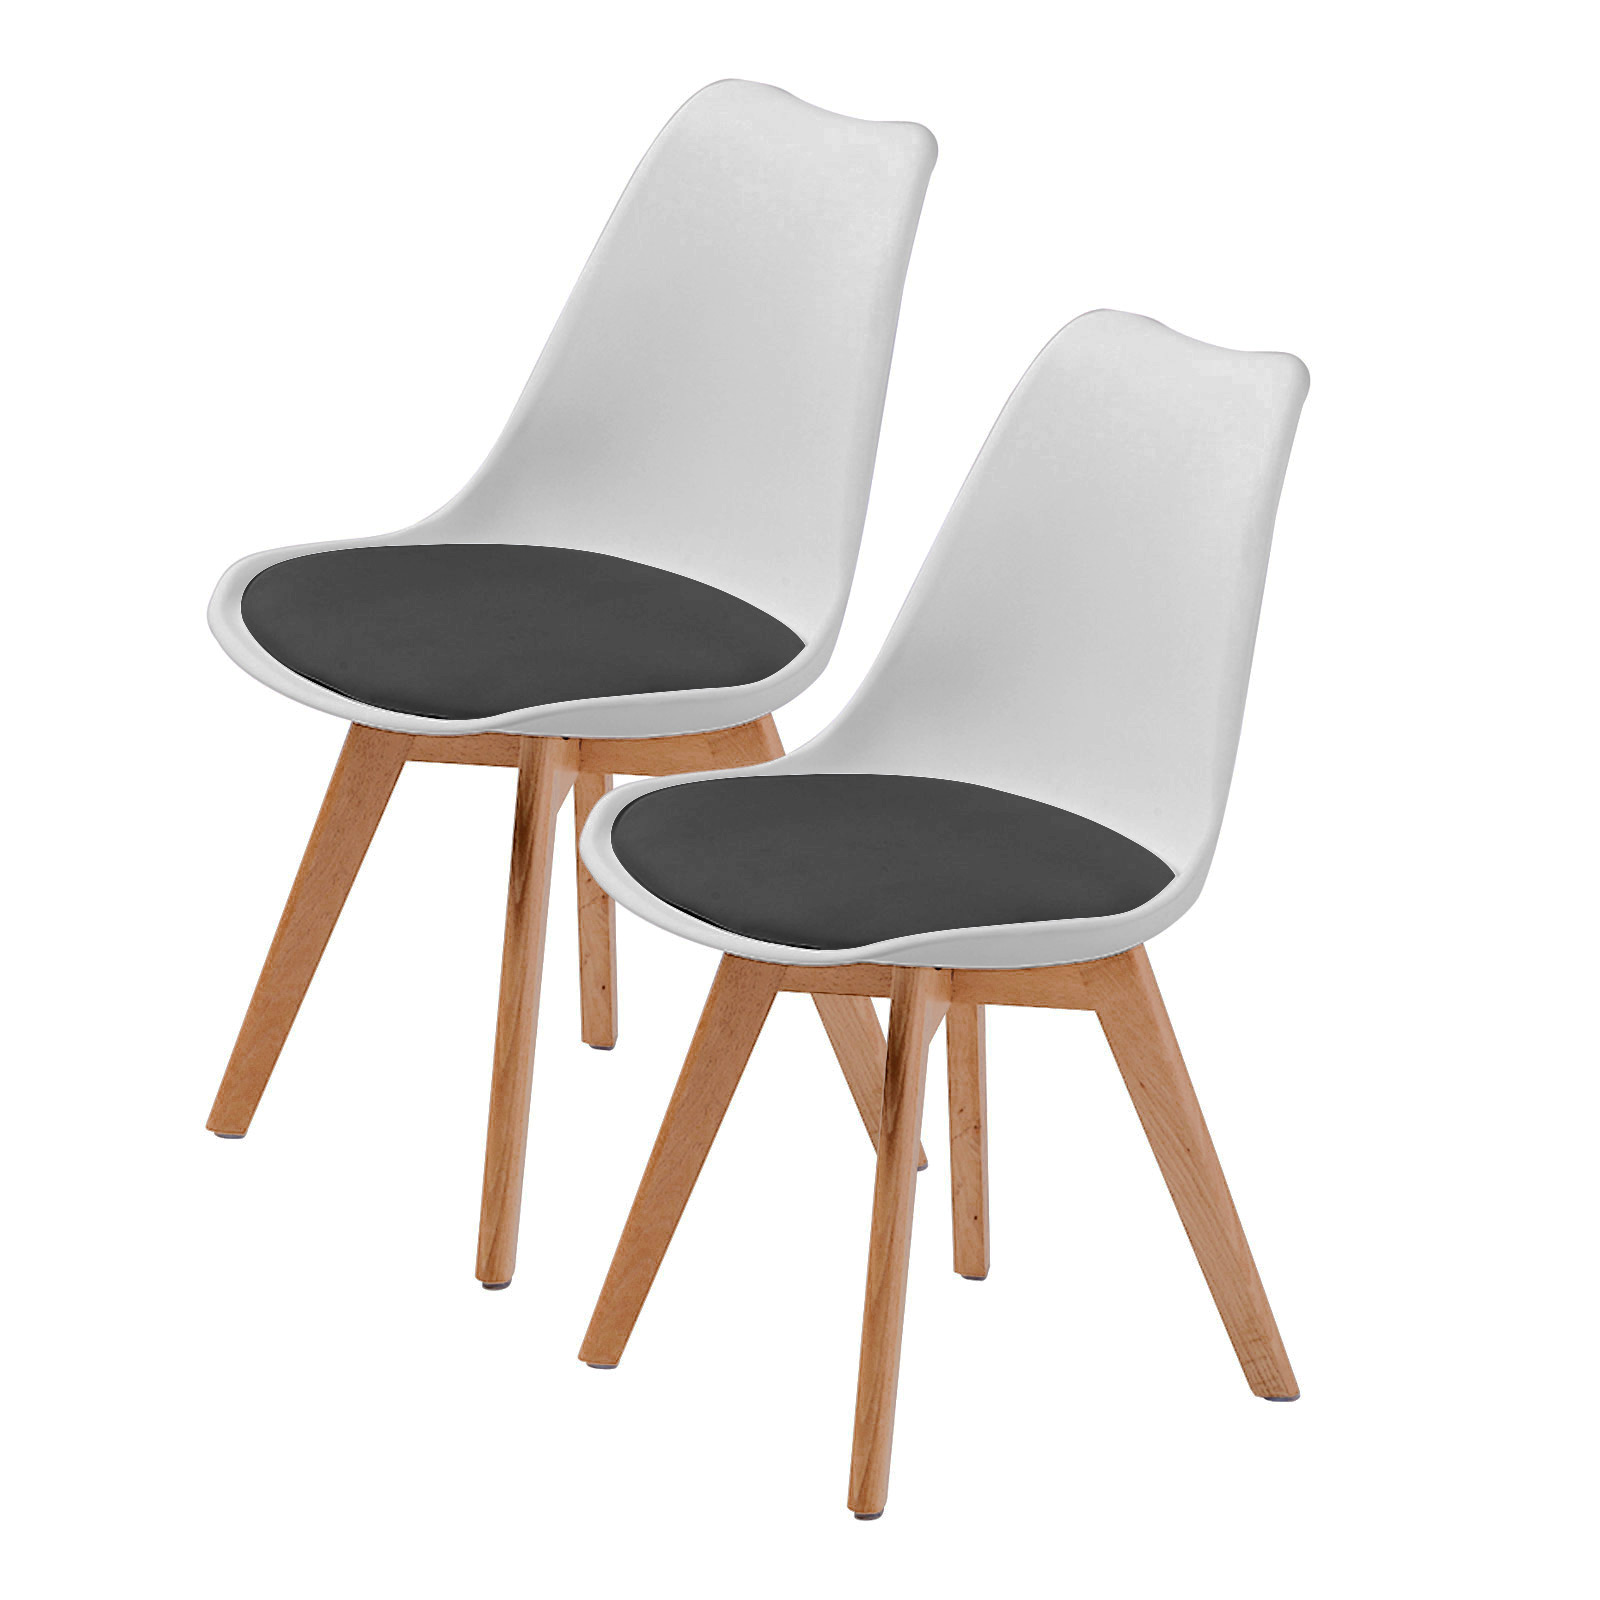 2X Padded Seat Dining Chair - WHITE + BLACK